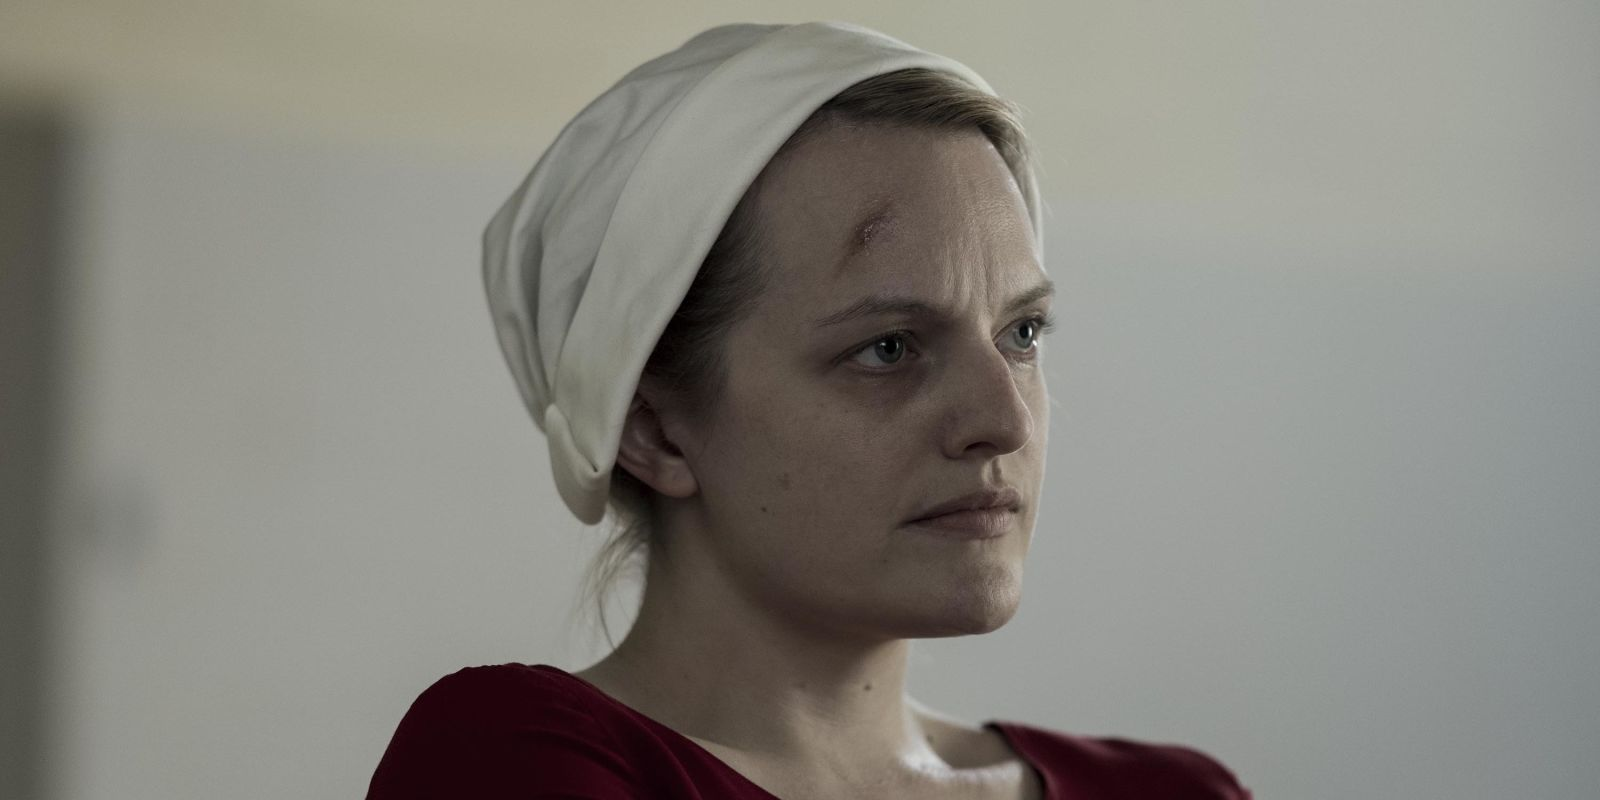 The Handmaid's Tale season 3: Release date, cast, spoilers and everything you need to know